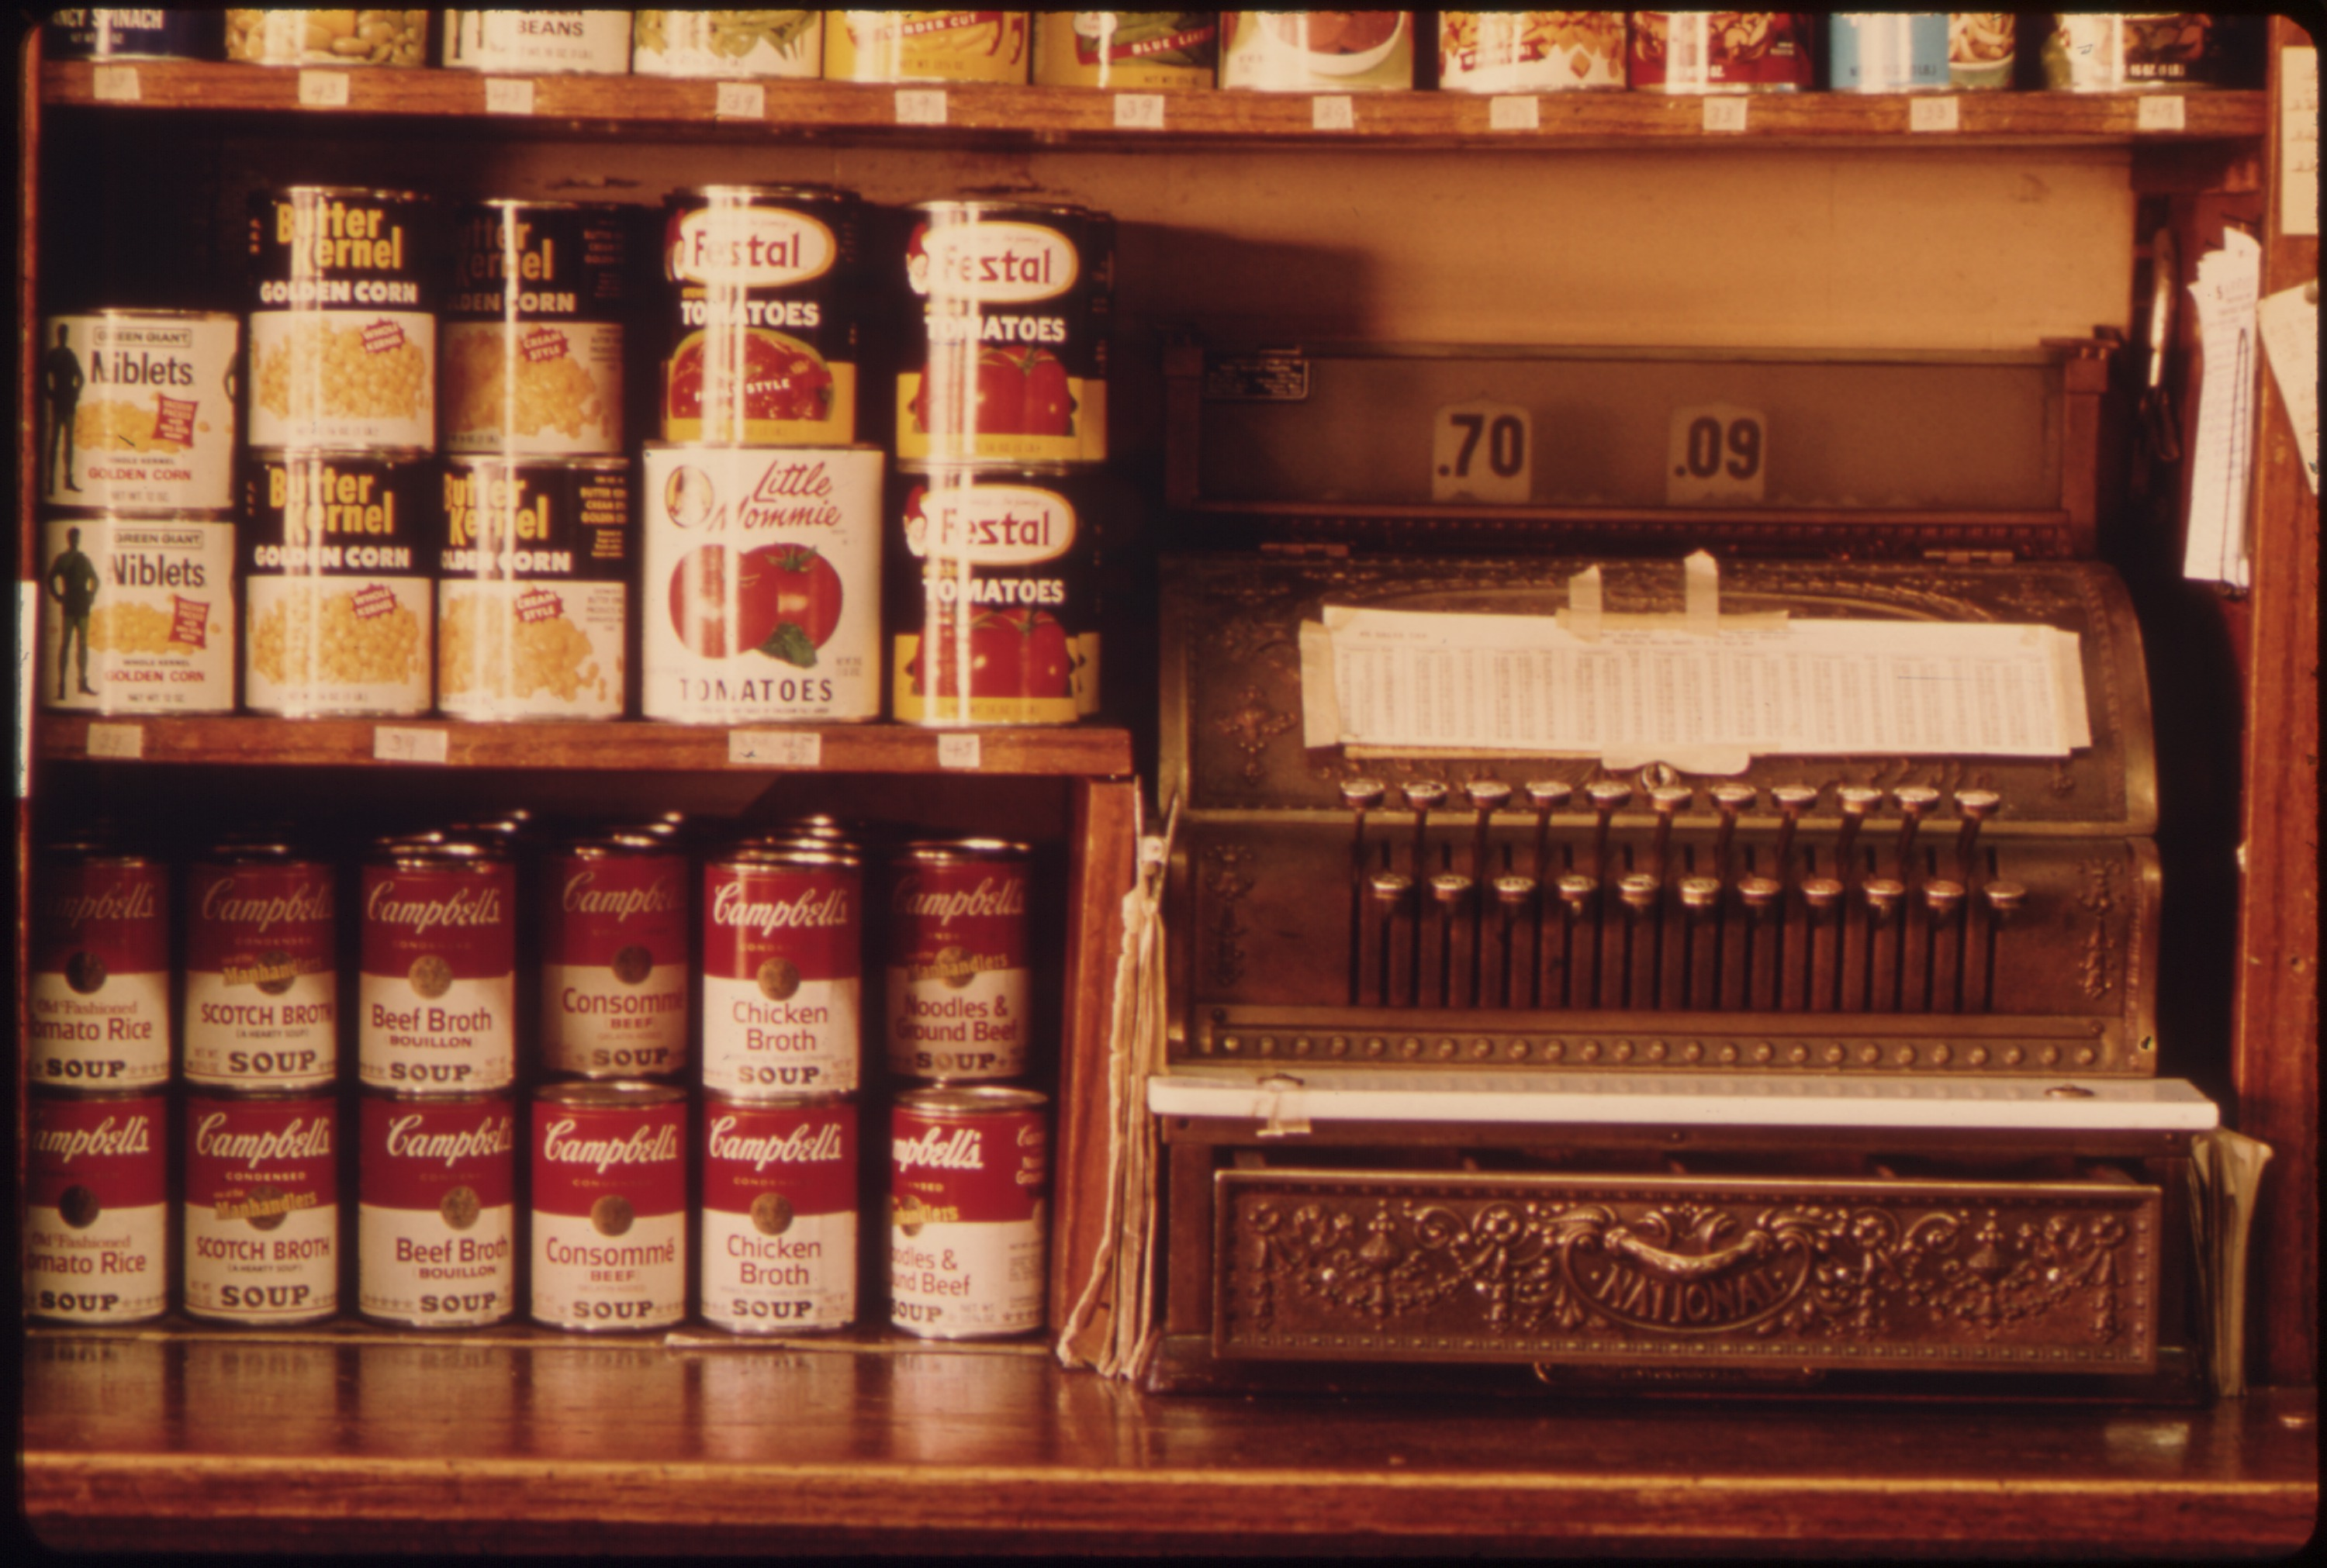 File:OLD STYLE CASH REGISTER AND CANNED GOODS IN A BUTCHER SHOP IN NEW ULM